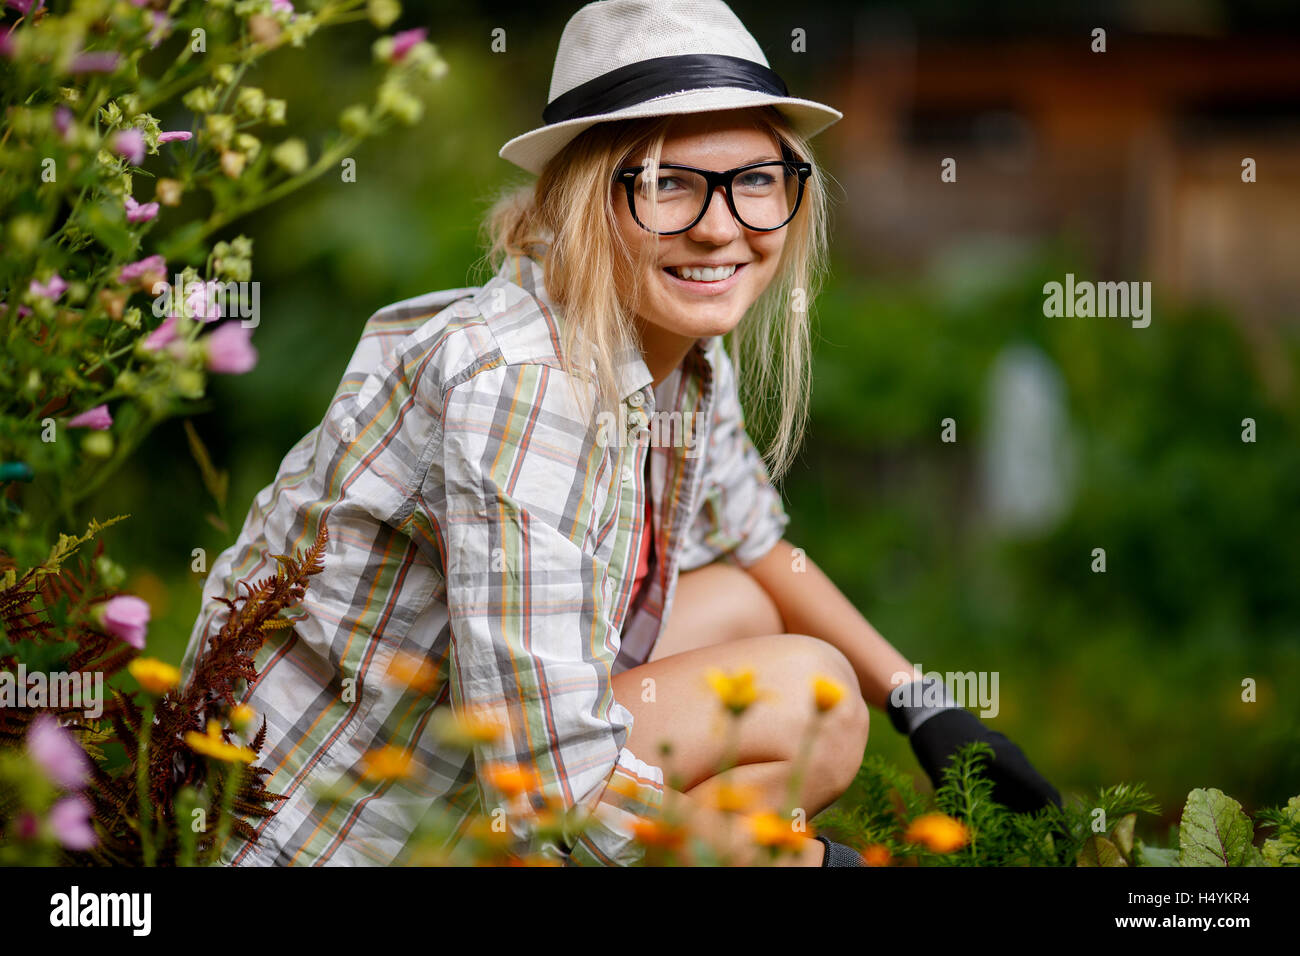 Portrait of happy young lady working in summer blossoming garden - Stock Image